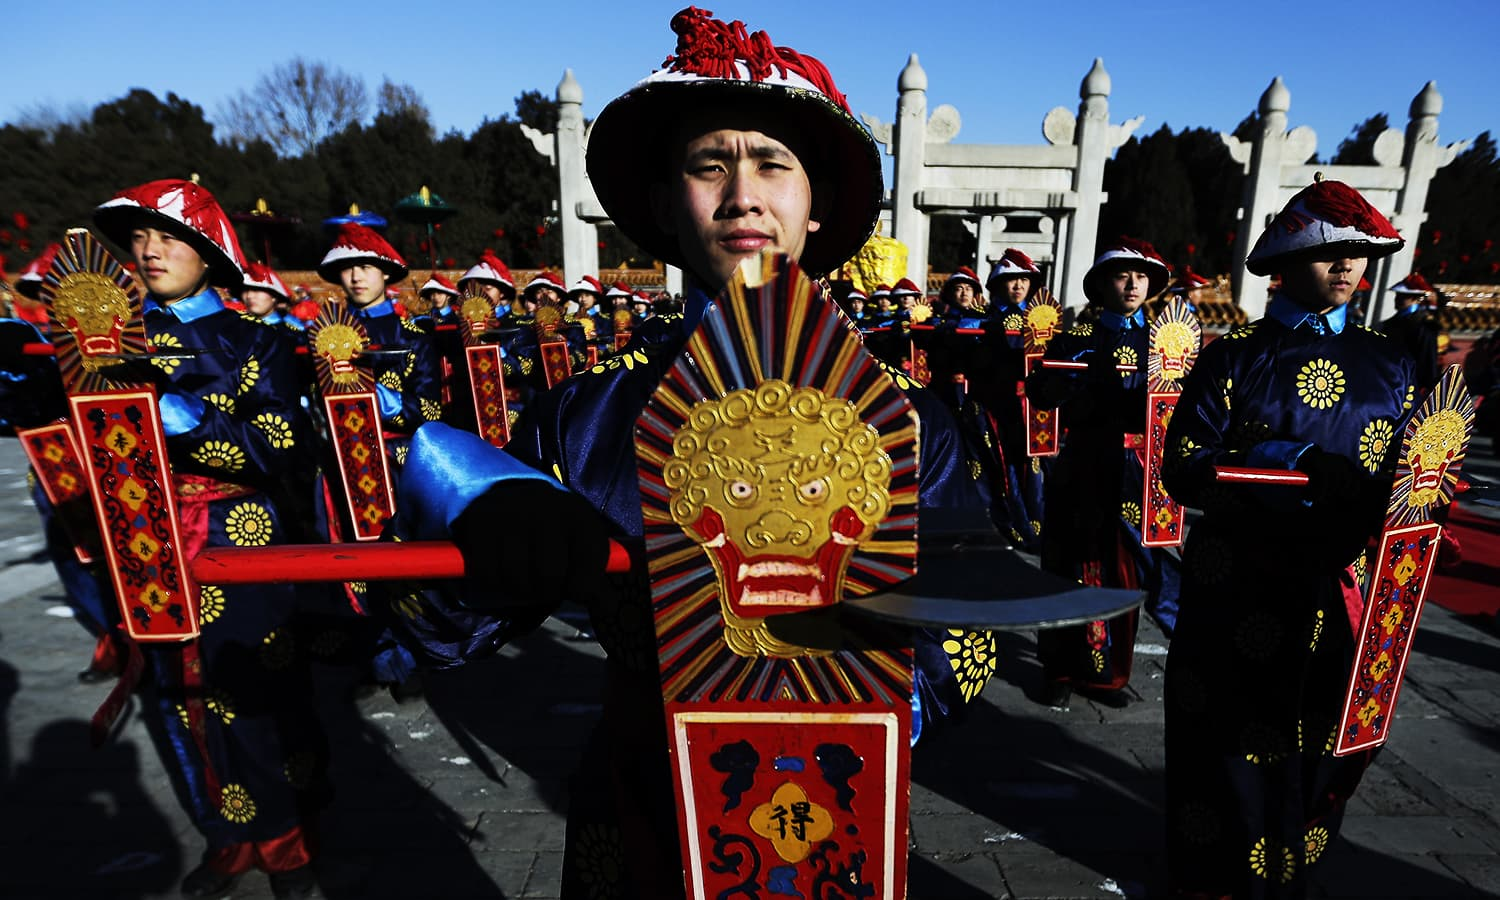 Performers dressed as a Qing Dynasty servants participate in the ancient Qing Dynasty ceremony in which emperors prayed for good harvest and fortune at a temple fair in Ditan Park during the first day of the Chinese Lunar New Year in Beijing, Monday, Feb. 8, 2016. Millions of Chinese began celebrating the Lunar New Year, which marks the Year of the Monkey on the Chinese zodiac. ─ AP